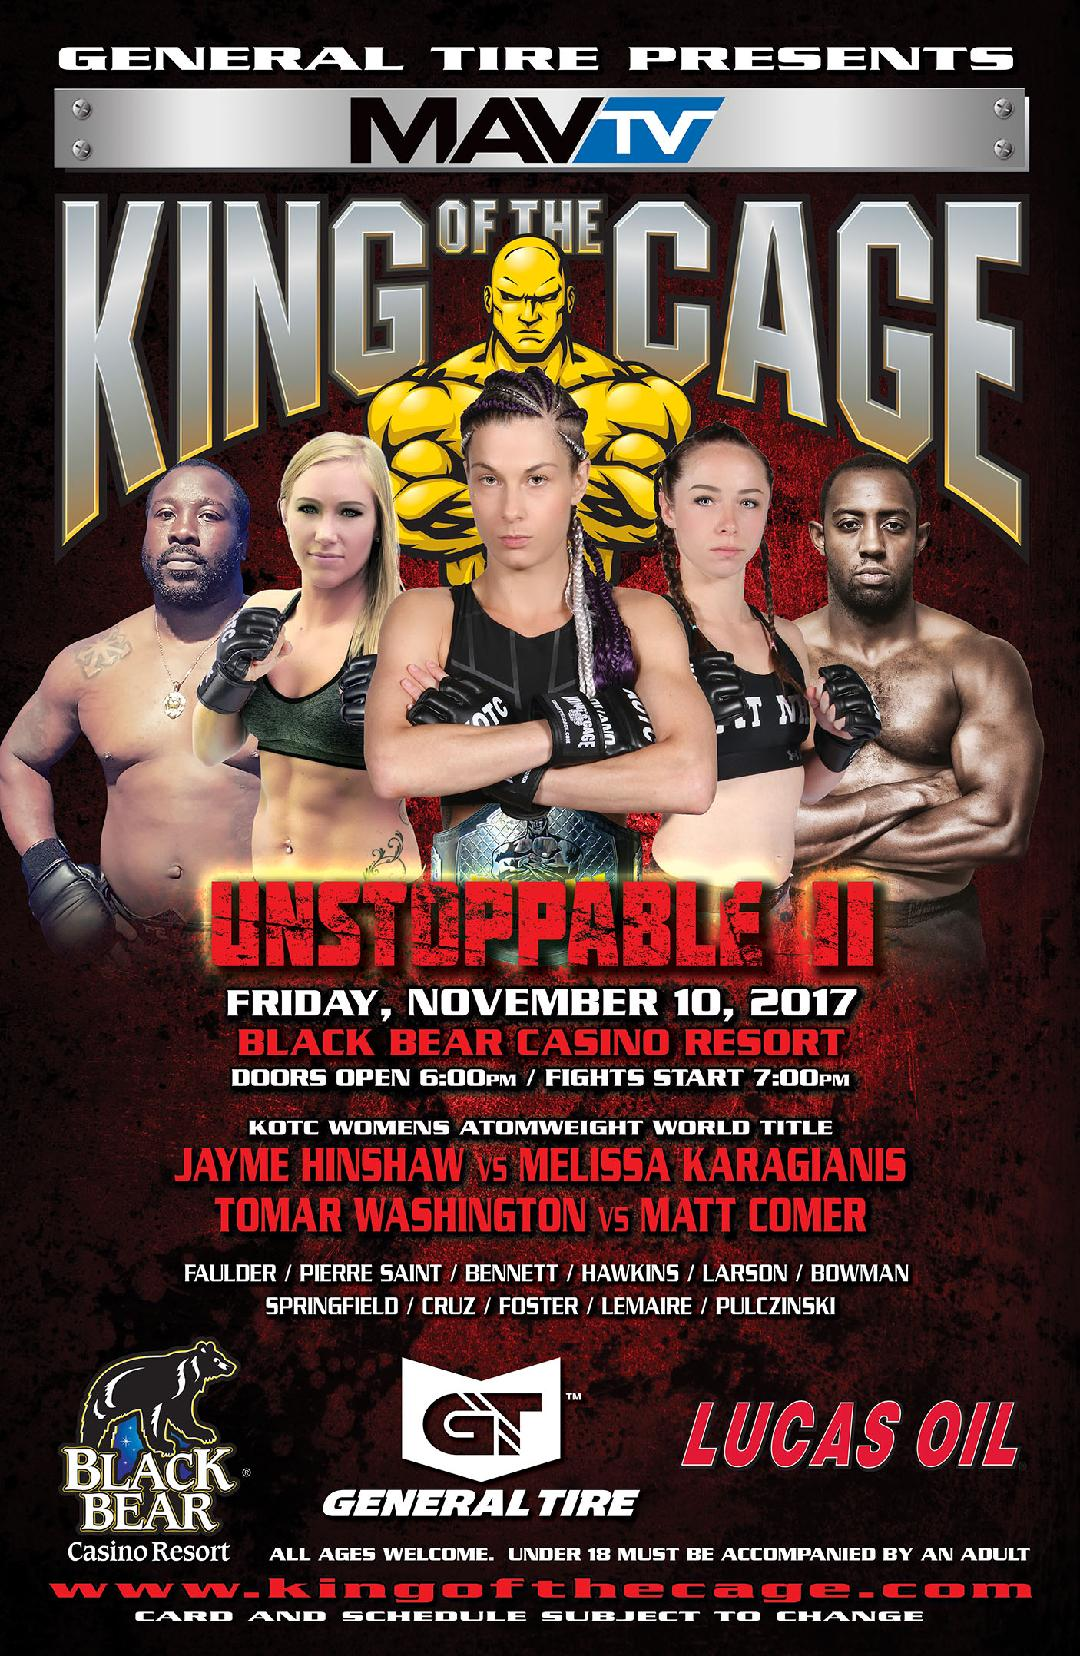 Melissa Karagianis defends KOTC atomweight title at UNSTOPPABLE II